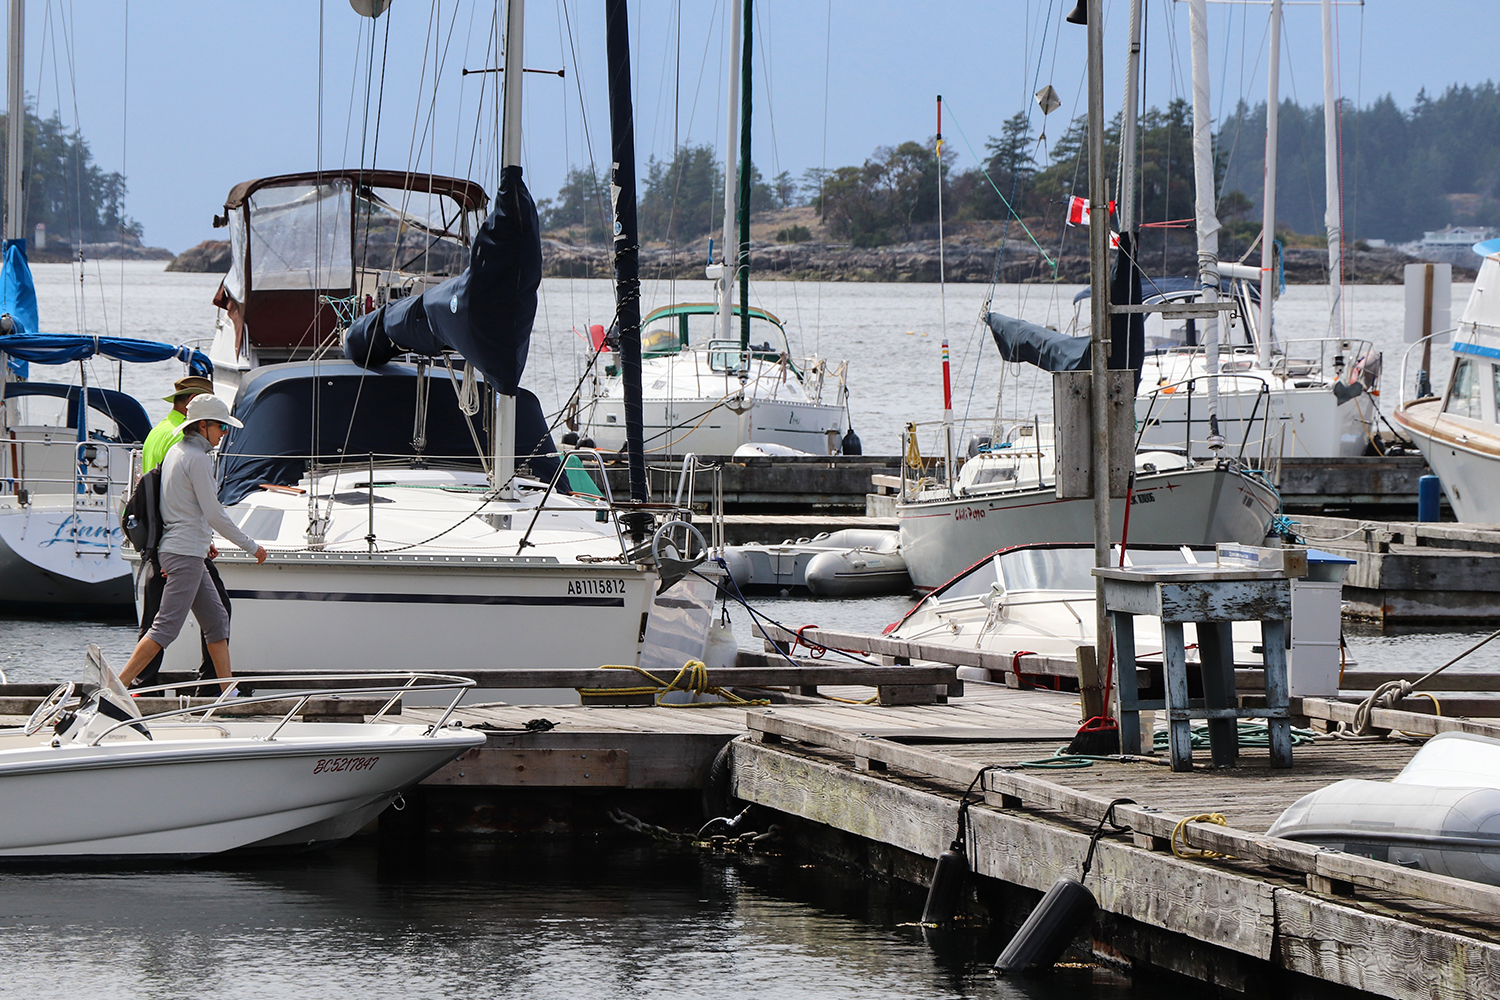 Two boaters using John Henry's marina dock walk among moored boats on the Pender Harbour.